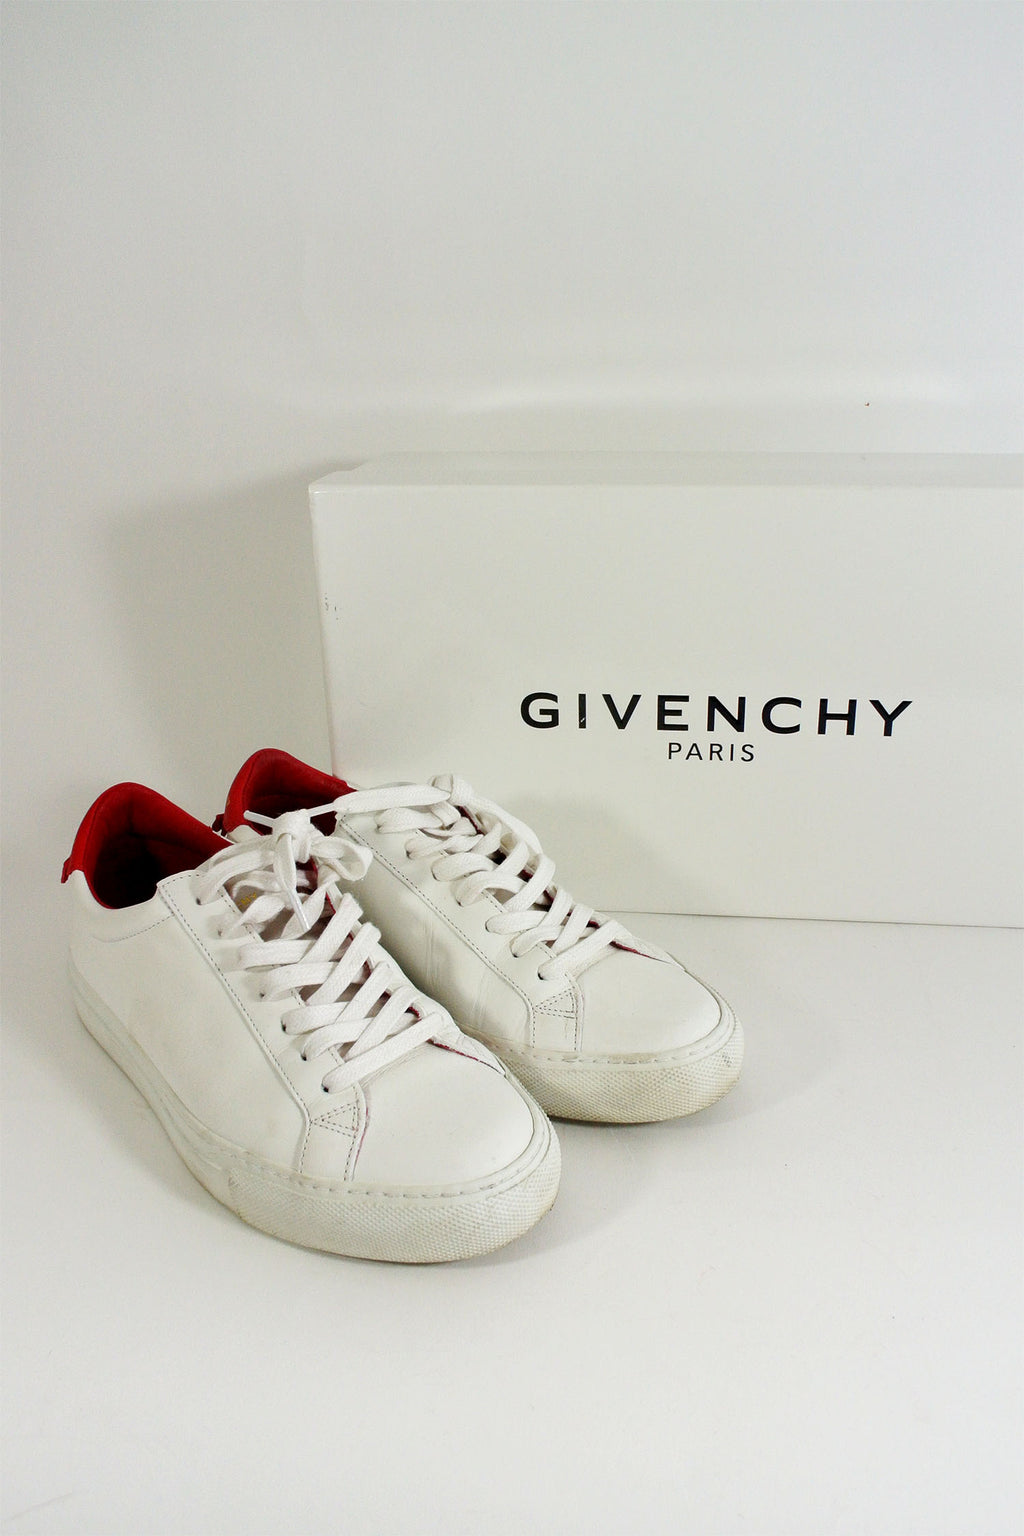 Givenchy 2017 Urban Street Knots White & Red Sneakers sz 37